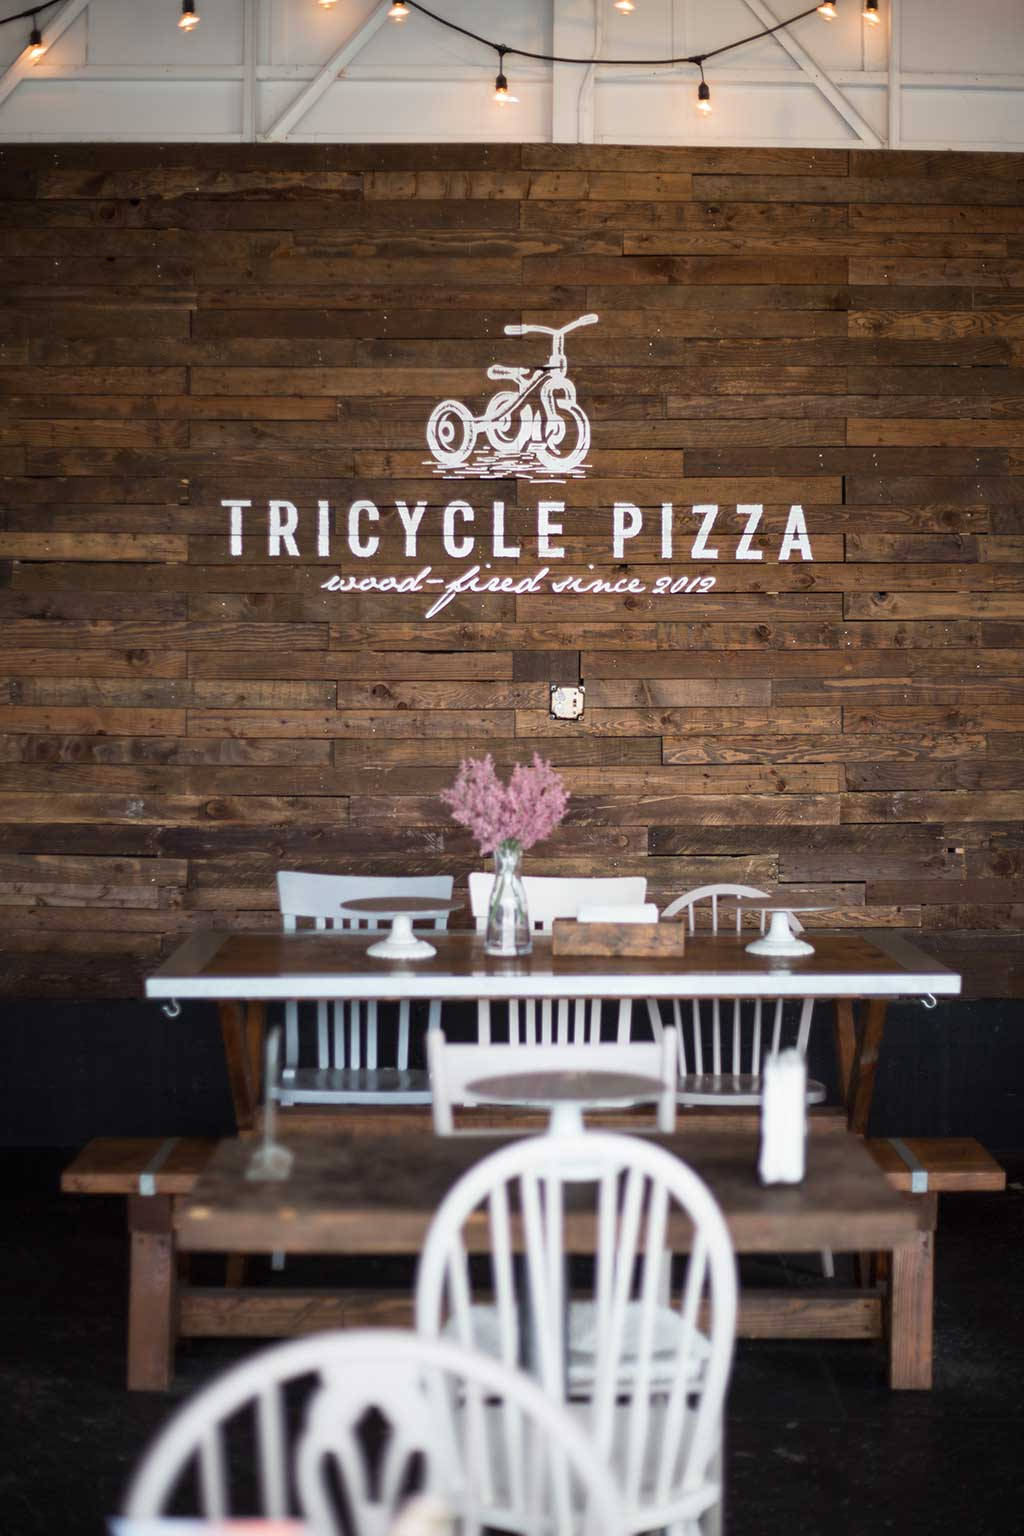 drive-swim-fly-tricycle-pizza-monterey-california-food-truck-bike-indoor-seating